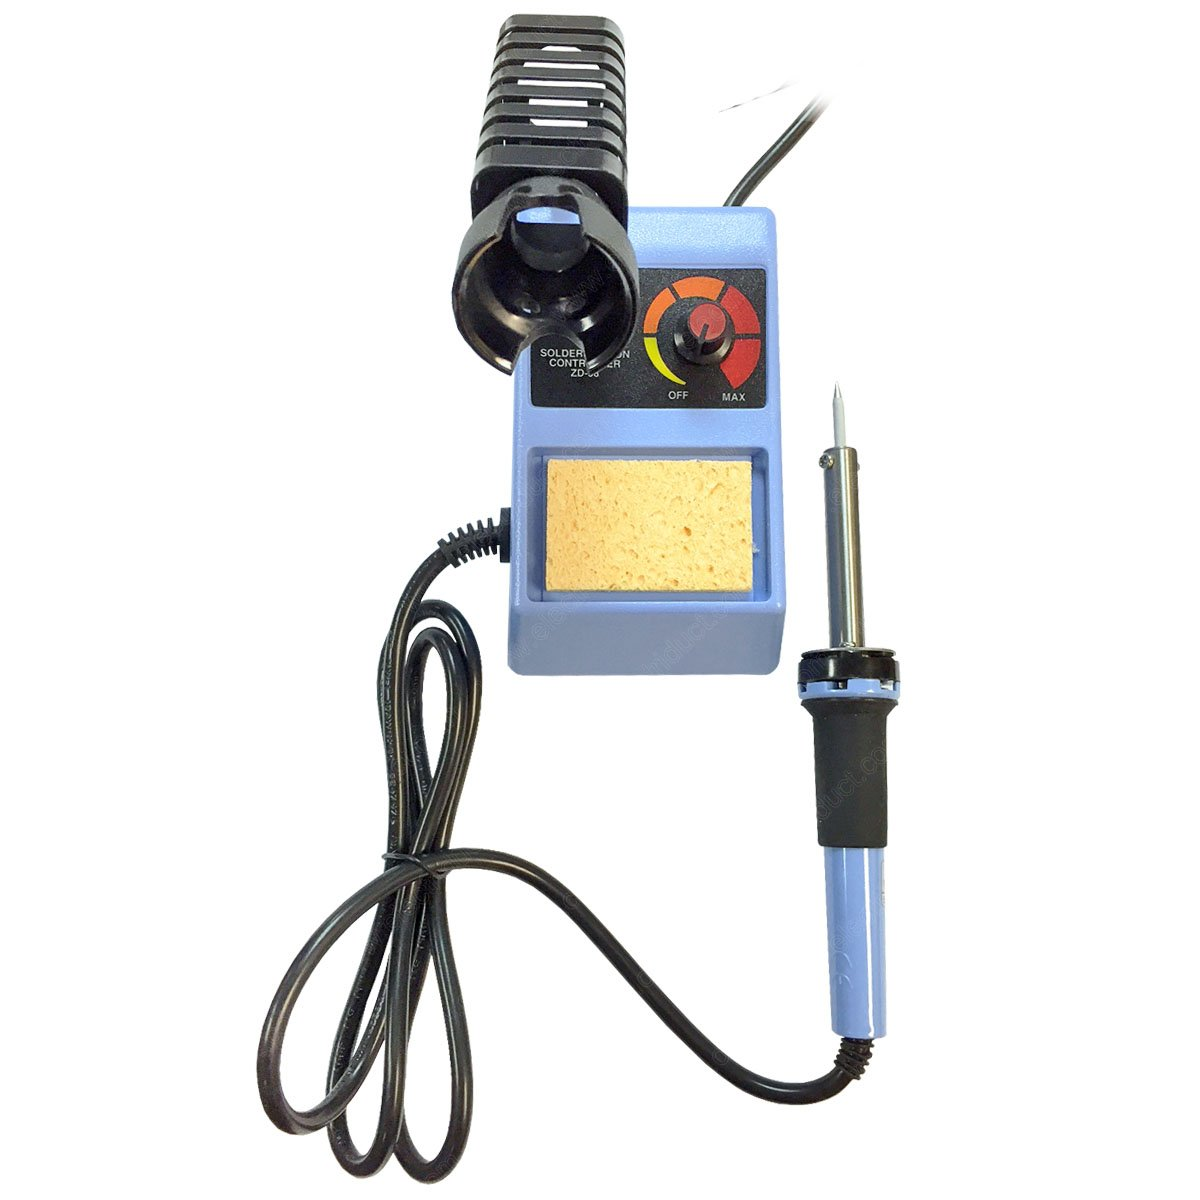 48W Adjustable Temperature Controlled Soldering Station (TL-ZS-STATION-Z98)